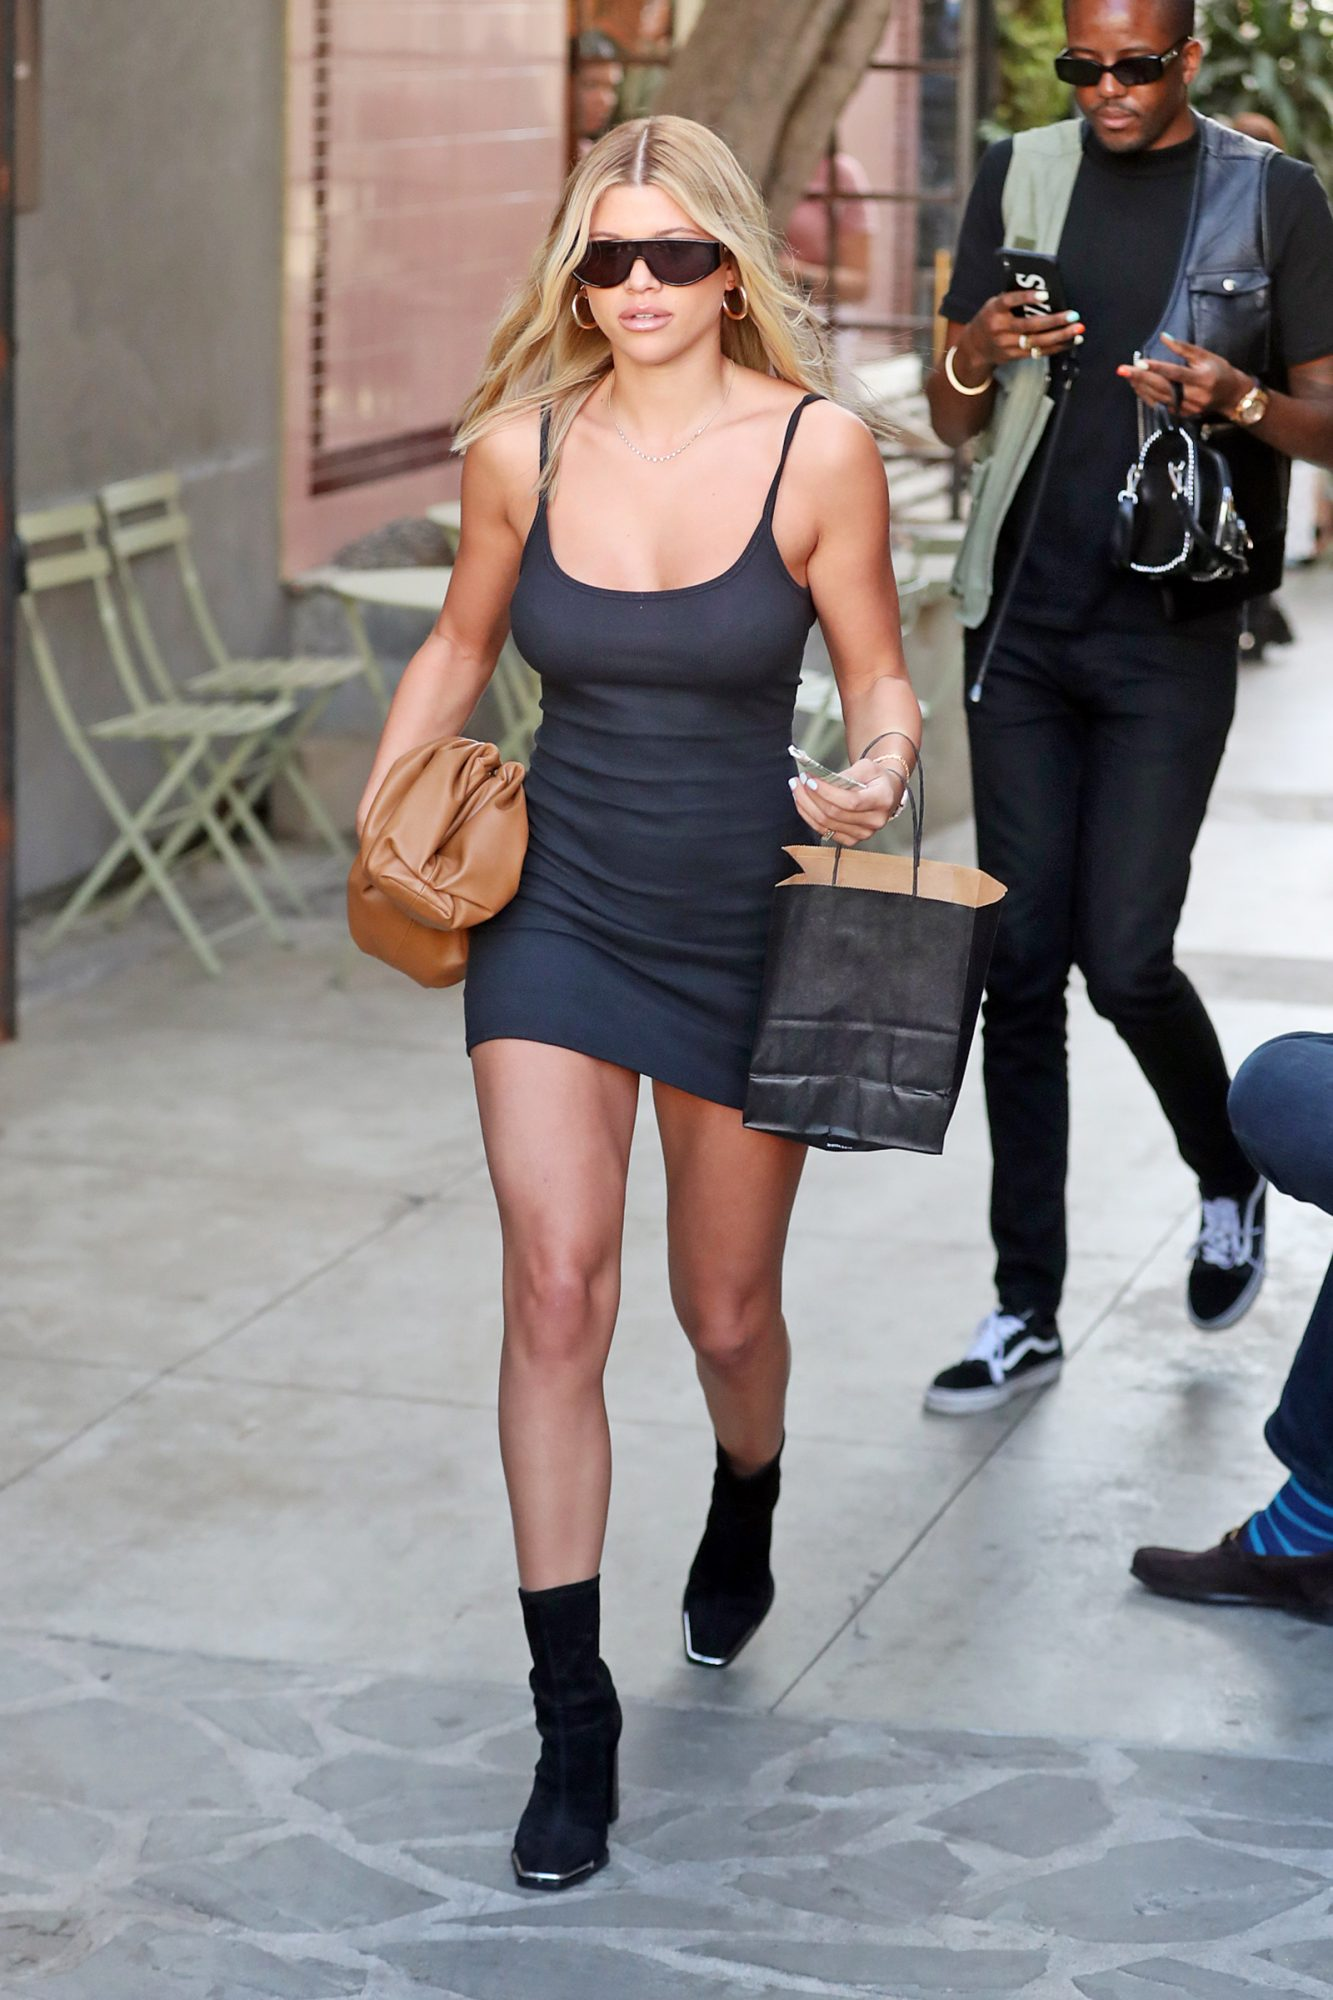 Sofia Richie looks stunning in black dress and black boots while leaving Nine Zero One Salon in Beverly Hills